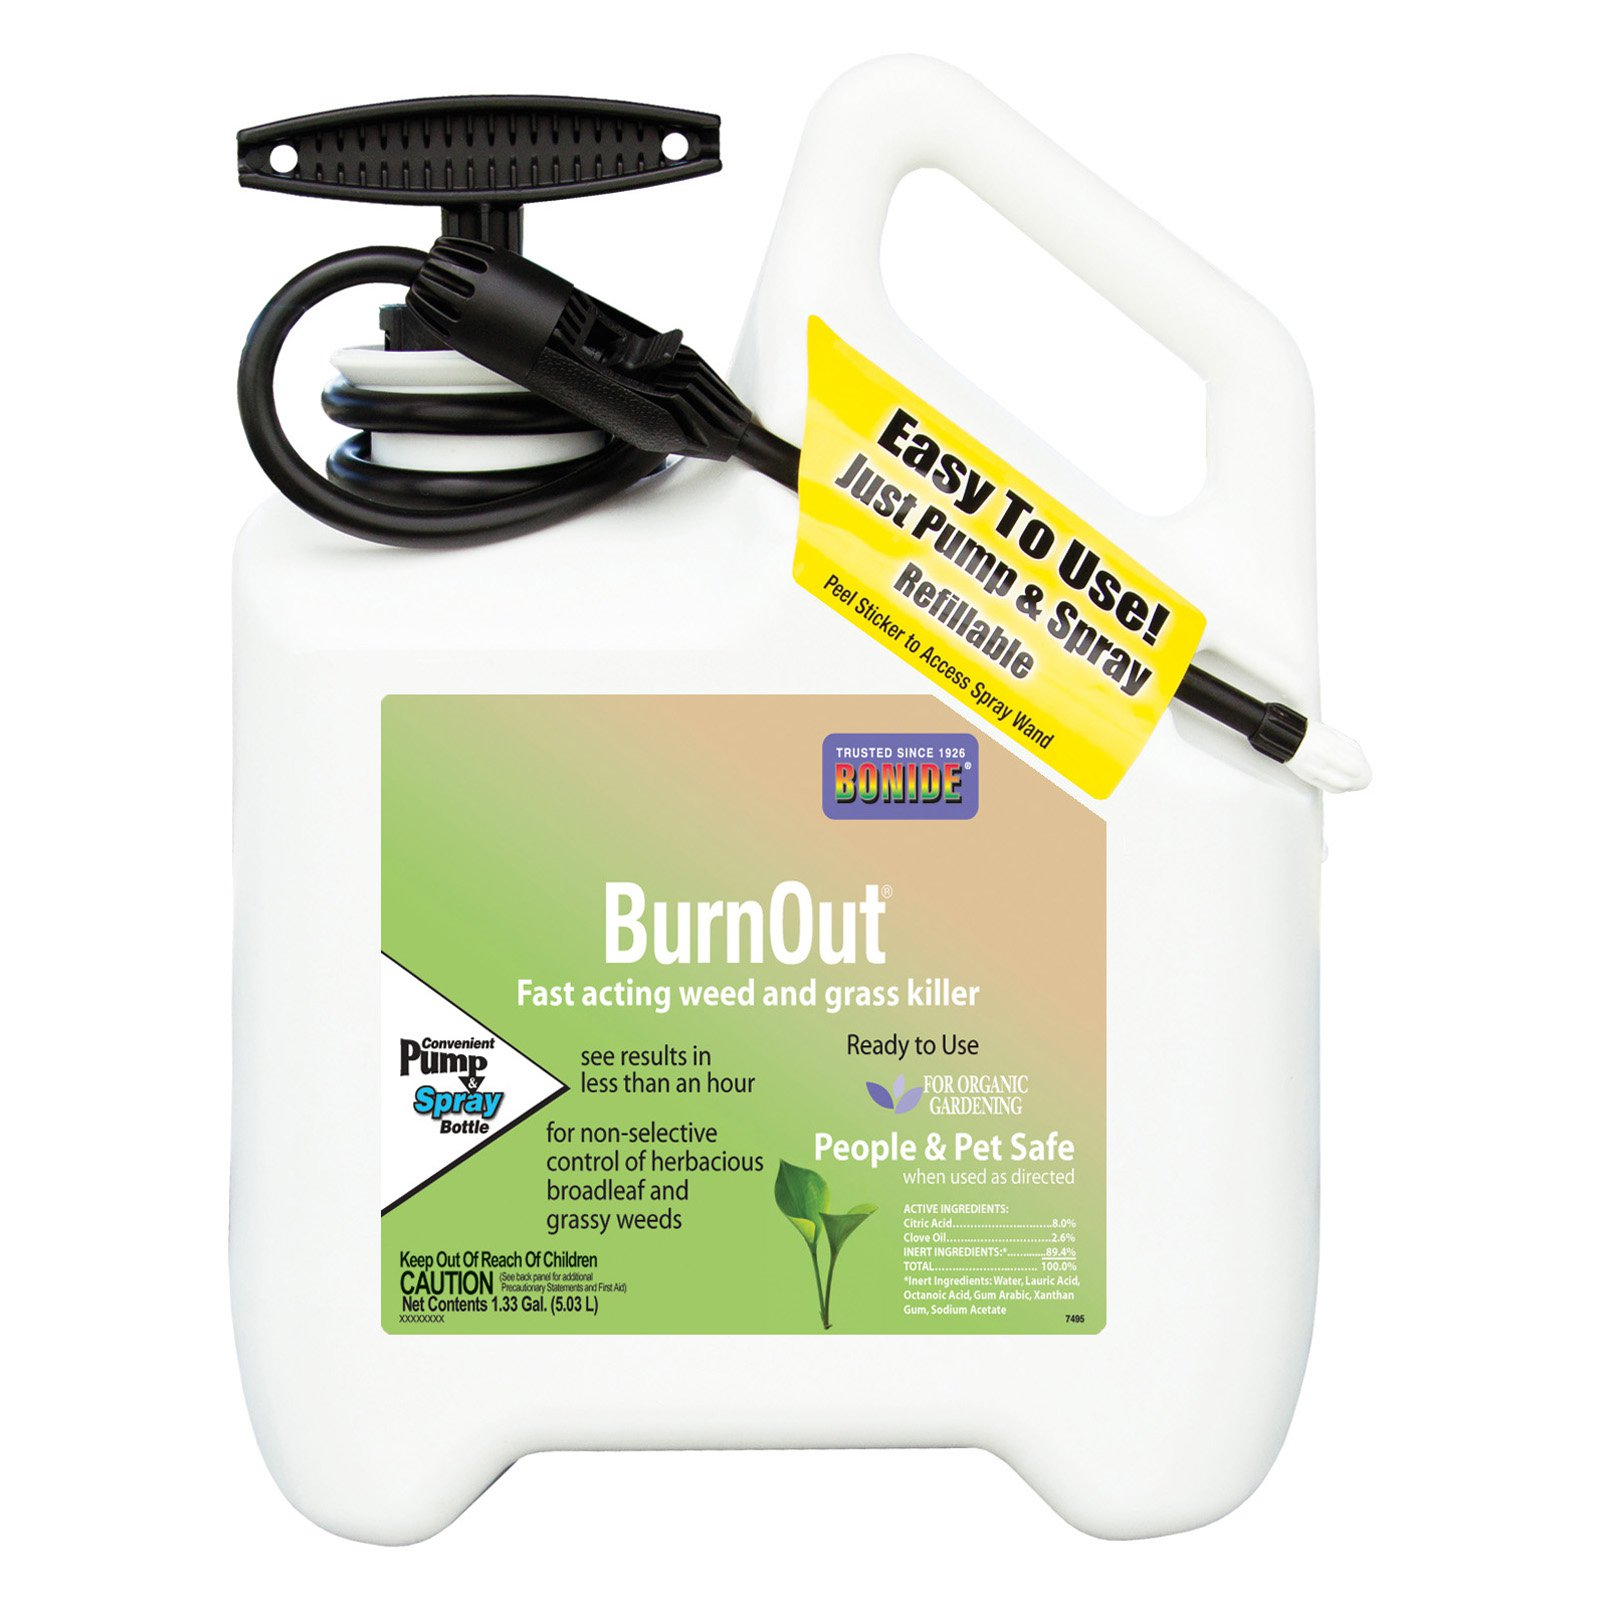 Bonide Product BND7495 Bonide Burn Out Weed & Grass Killer, 1 gal